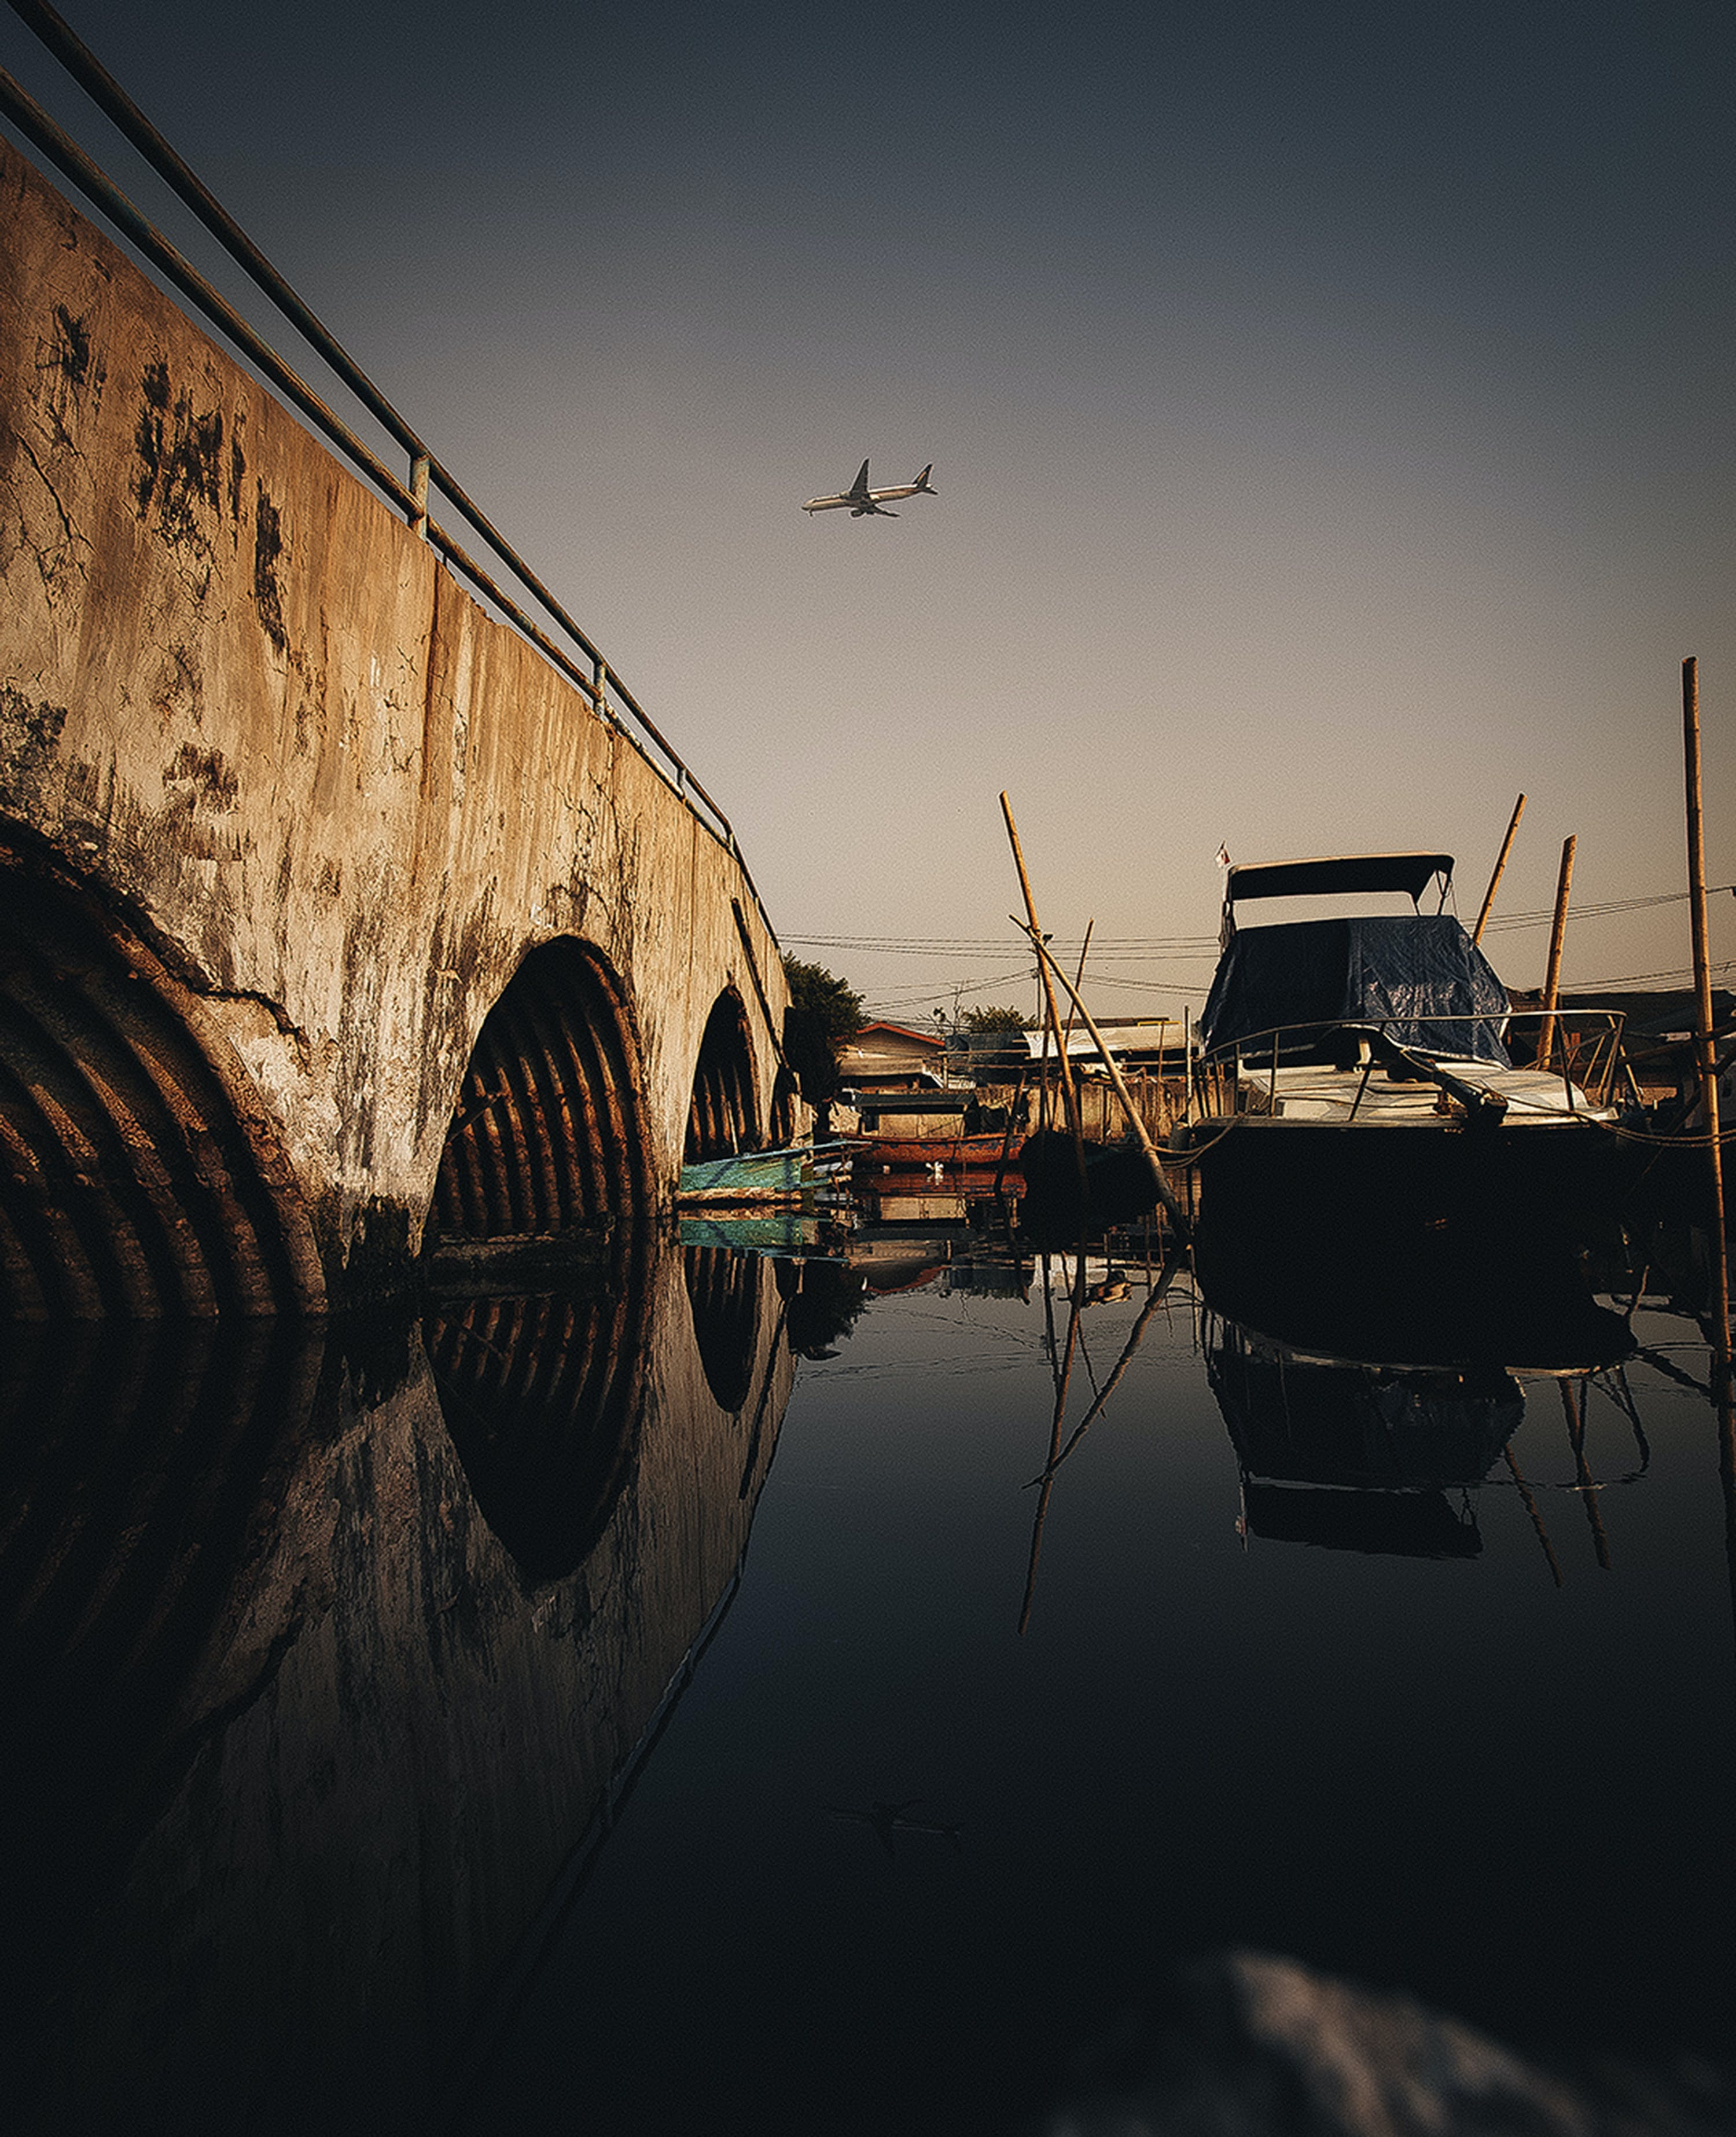 Boat on a Dock